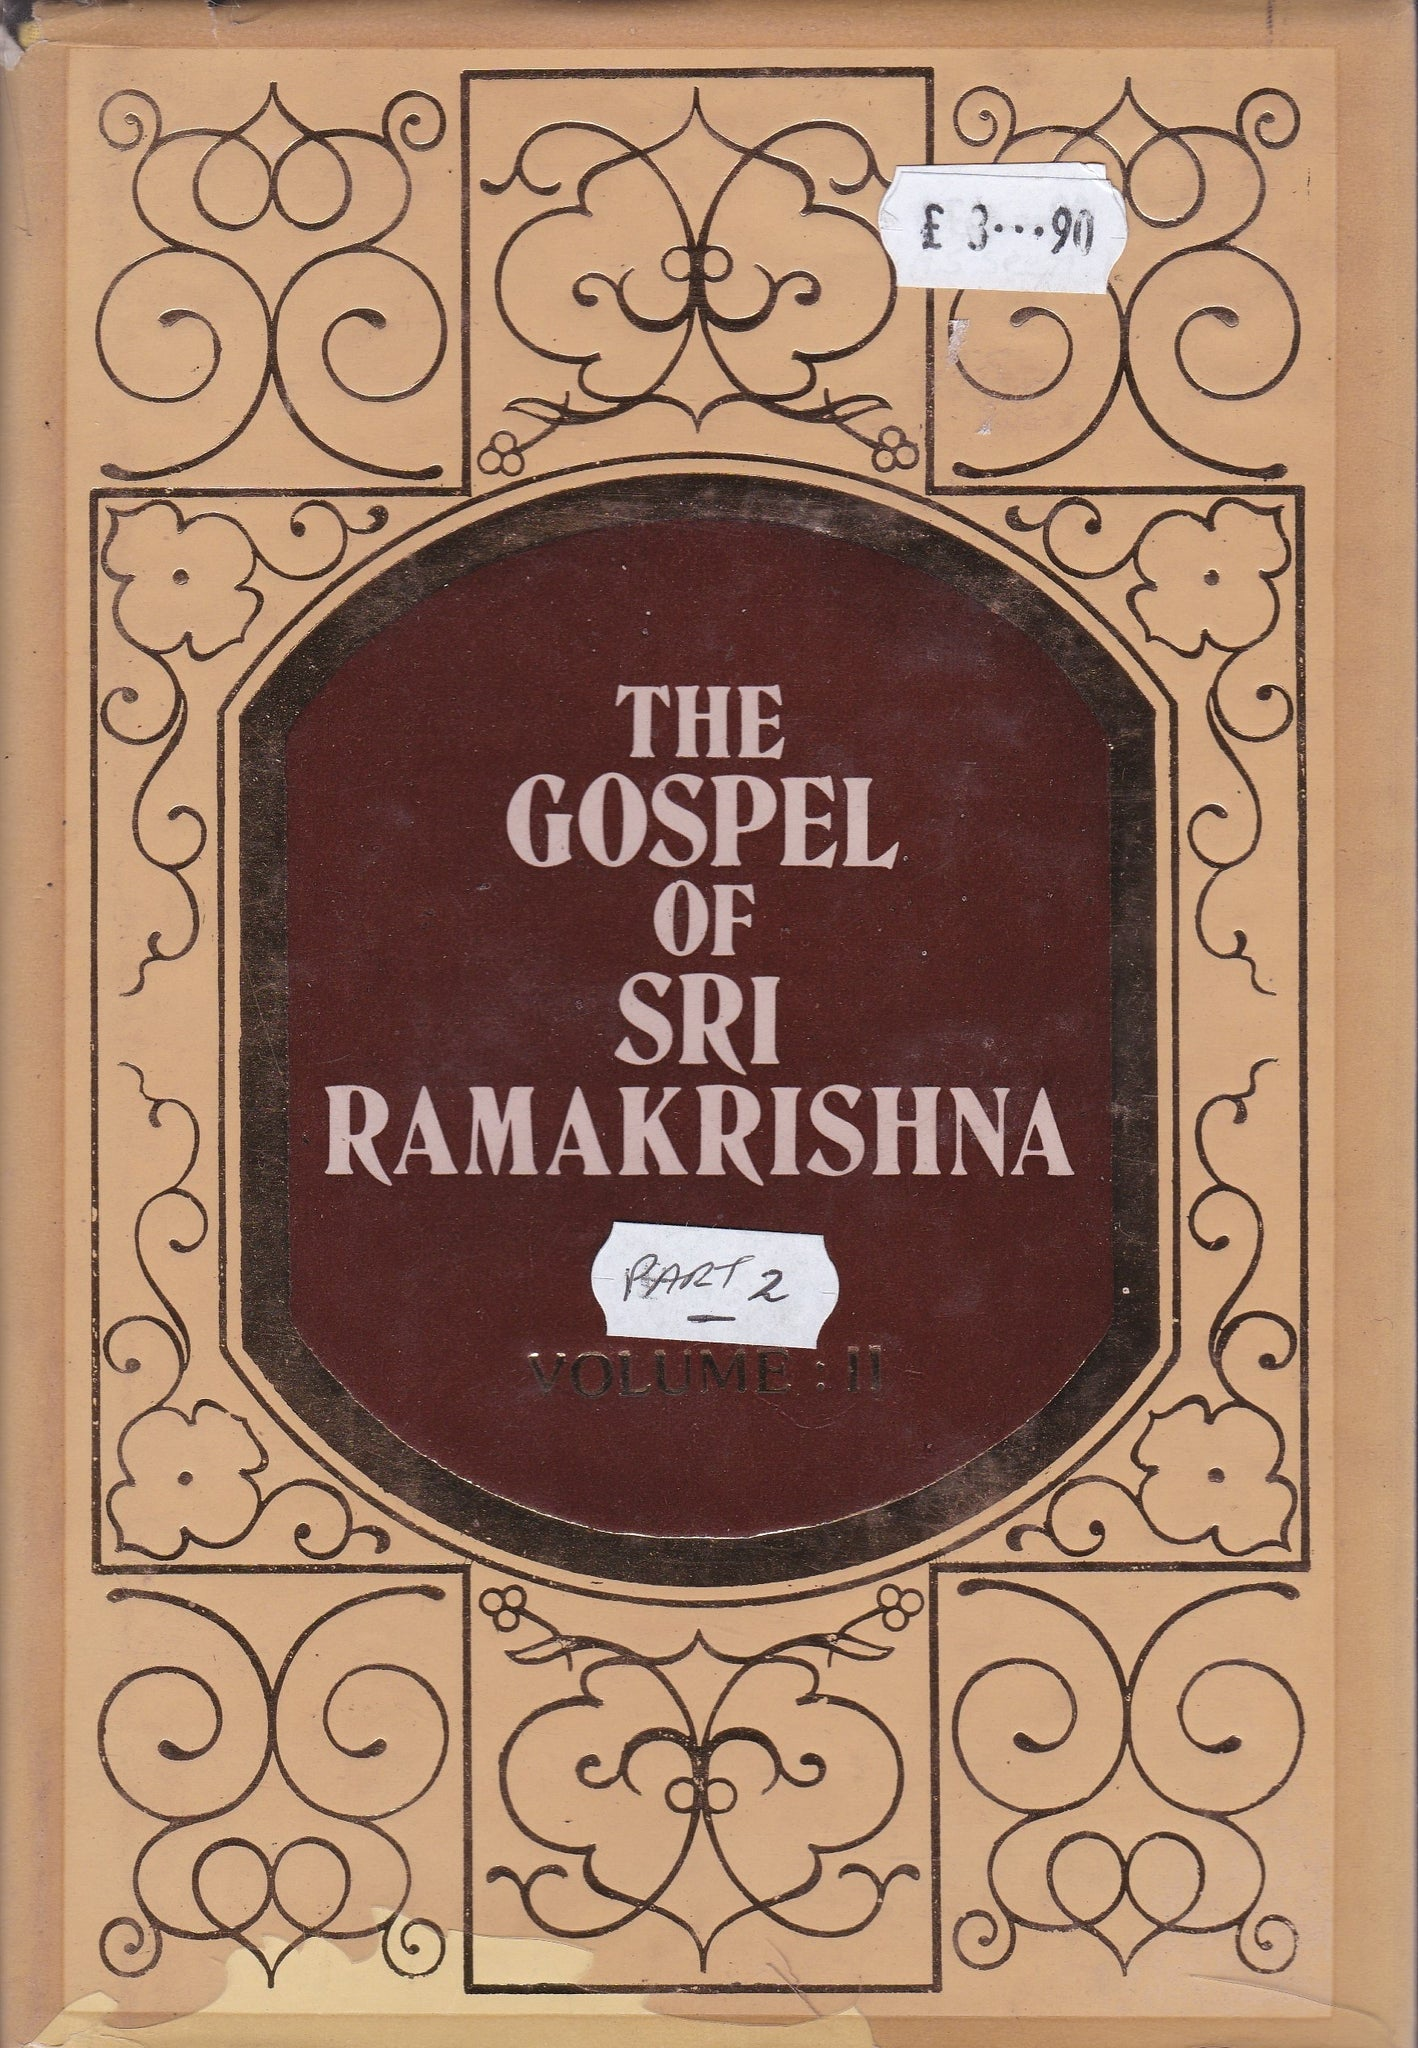 The Gospel of Sri Ramkrishna - Part 2 only